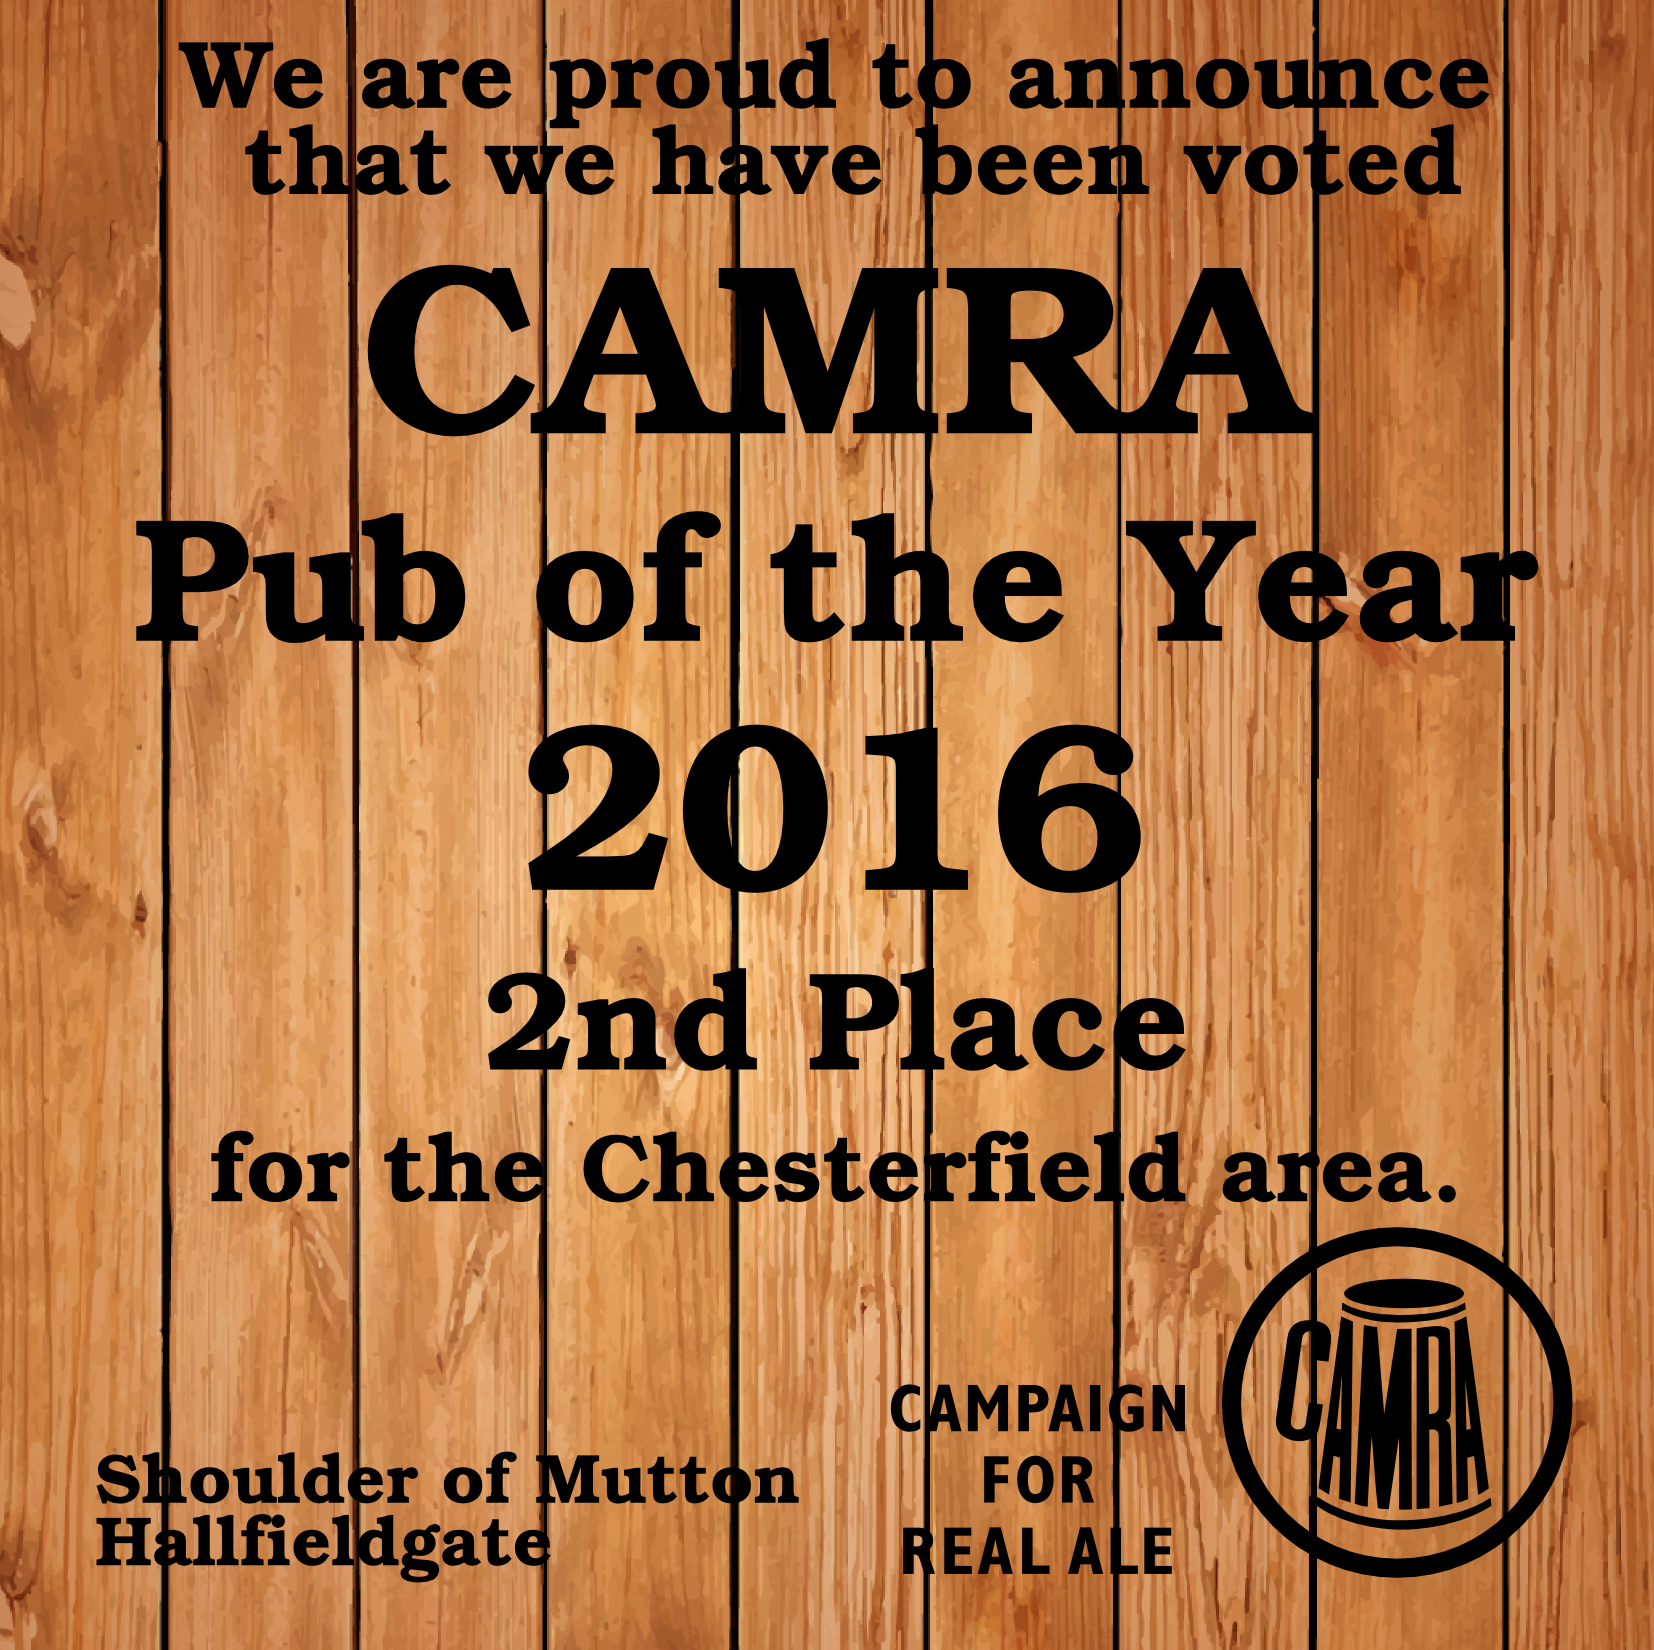 Pub of the Year 2016 - 2nd place